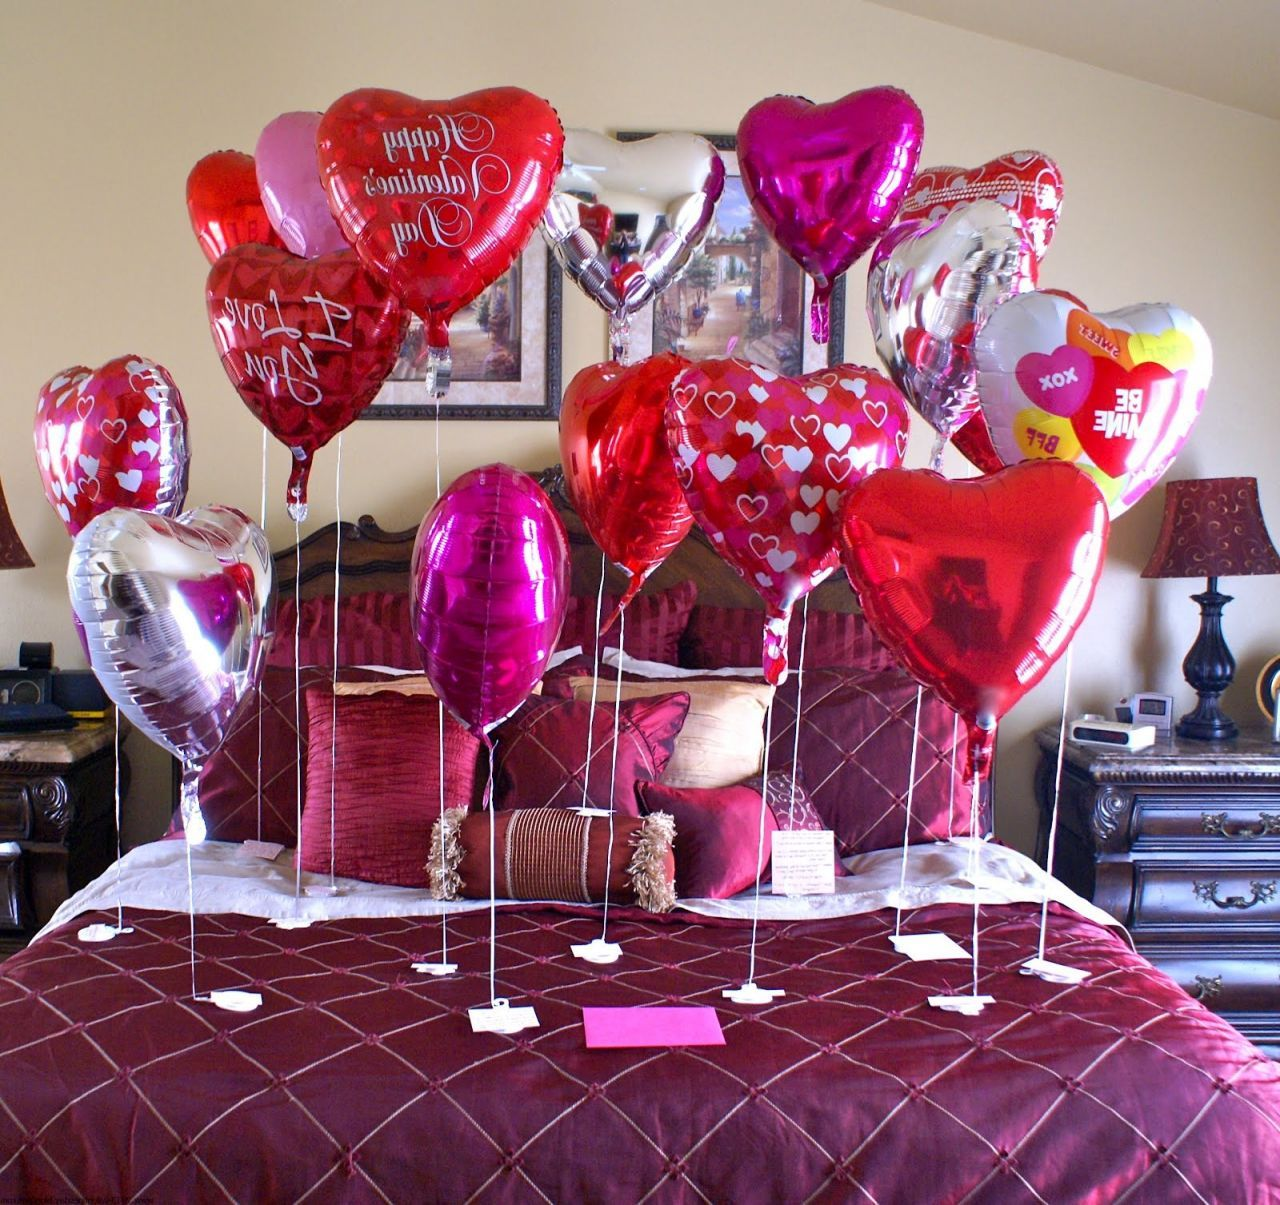 Bed Room Decoration With Heart Shape Balloons And Valentine Decor And Also Valentines  Day Decorations